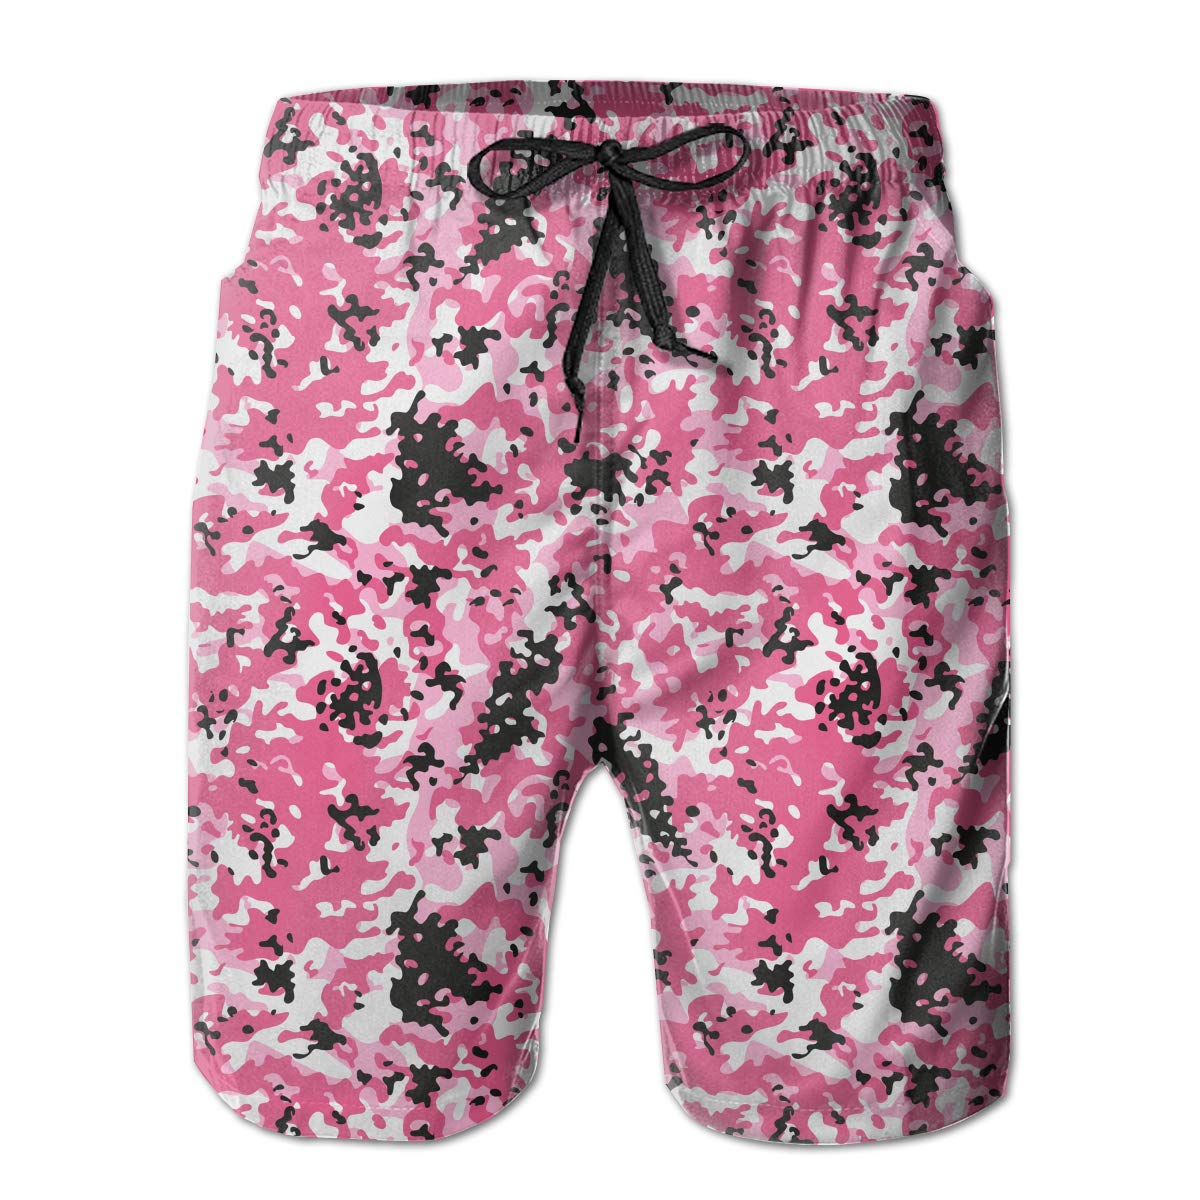 APPCLL Fashion Swim Trunks Mens Board Shorts Modern Pink Camouflage Quick Dry Shorts